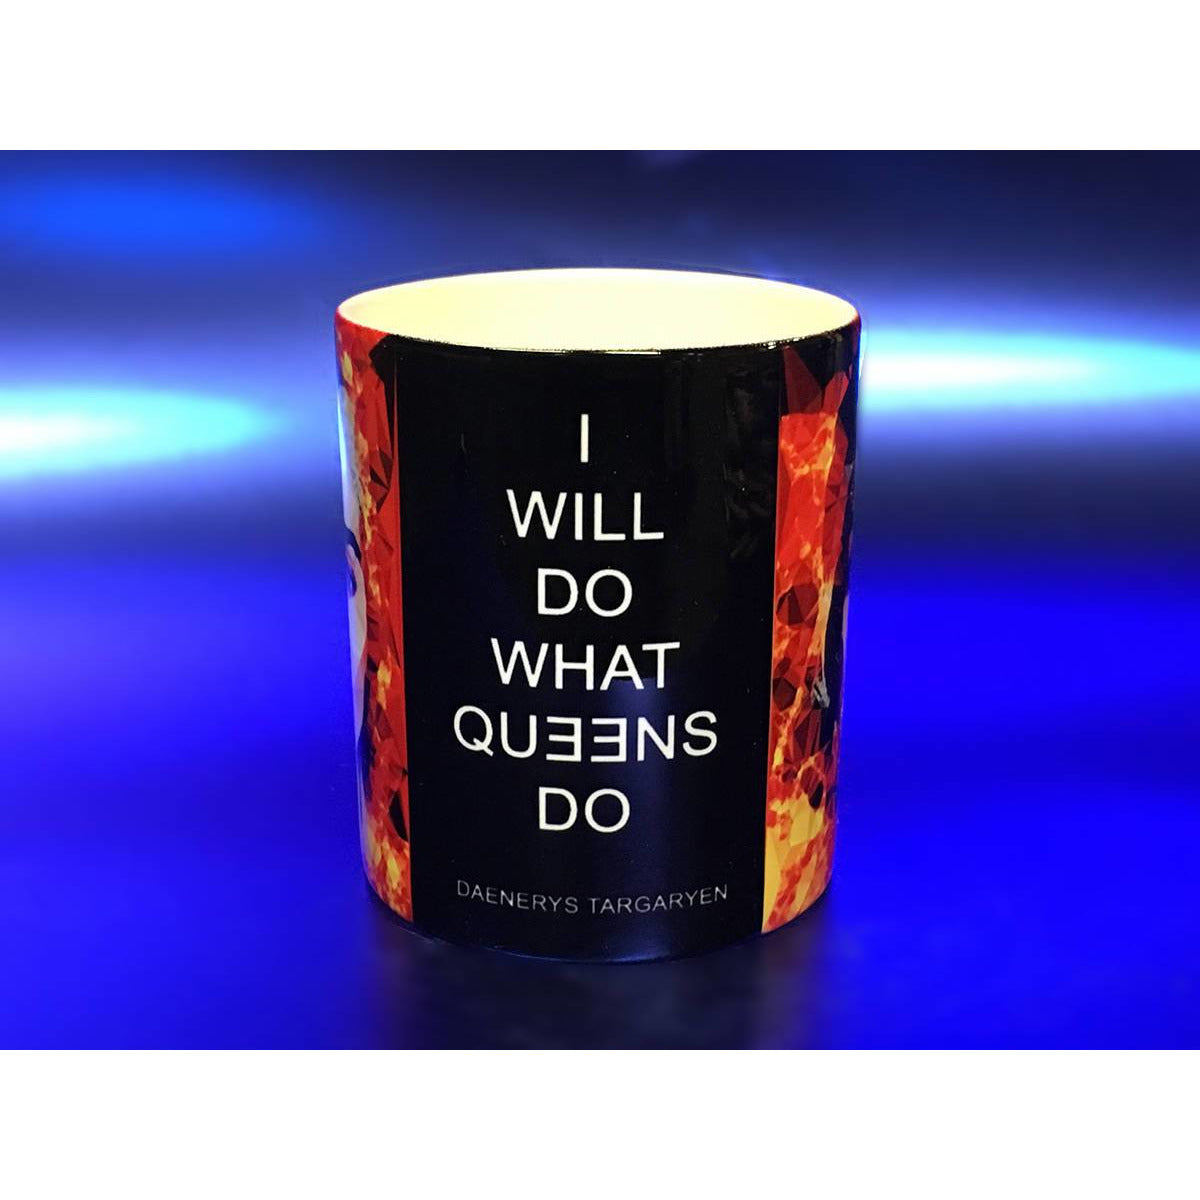 Daenerys Targaryen - Ashes to Ashes Mug by Baiba Auria - Egoiste Gallery